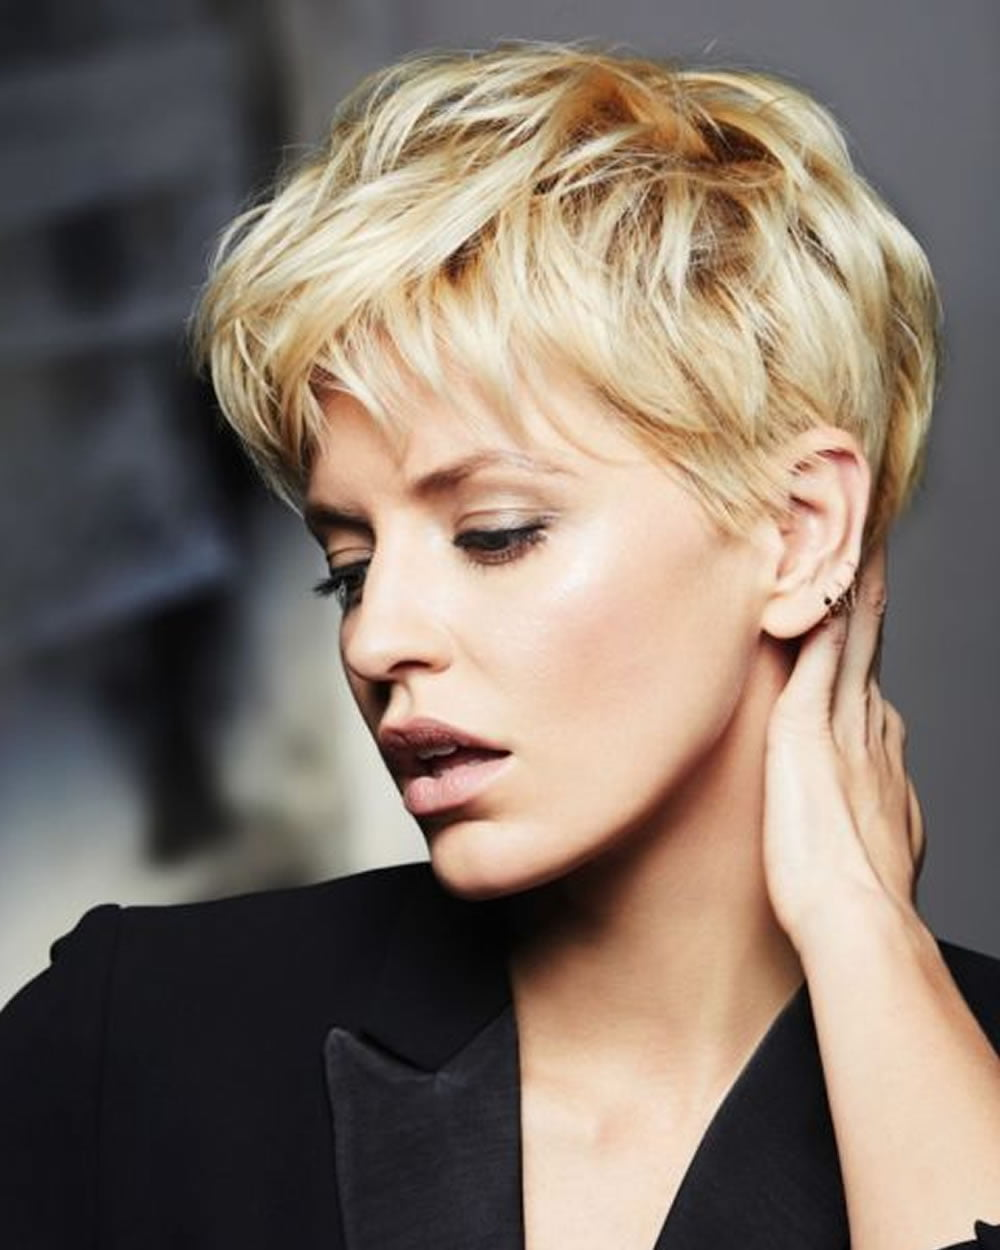 Short female haircuts for round faces